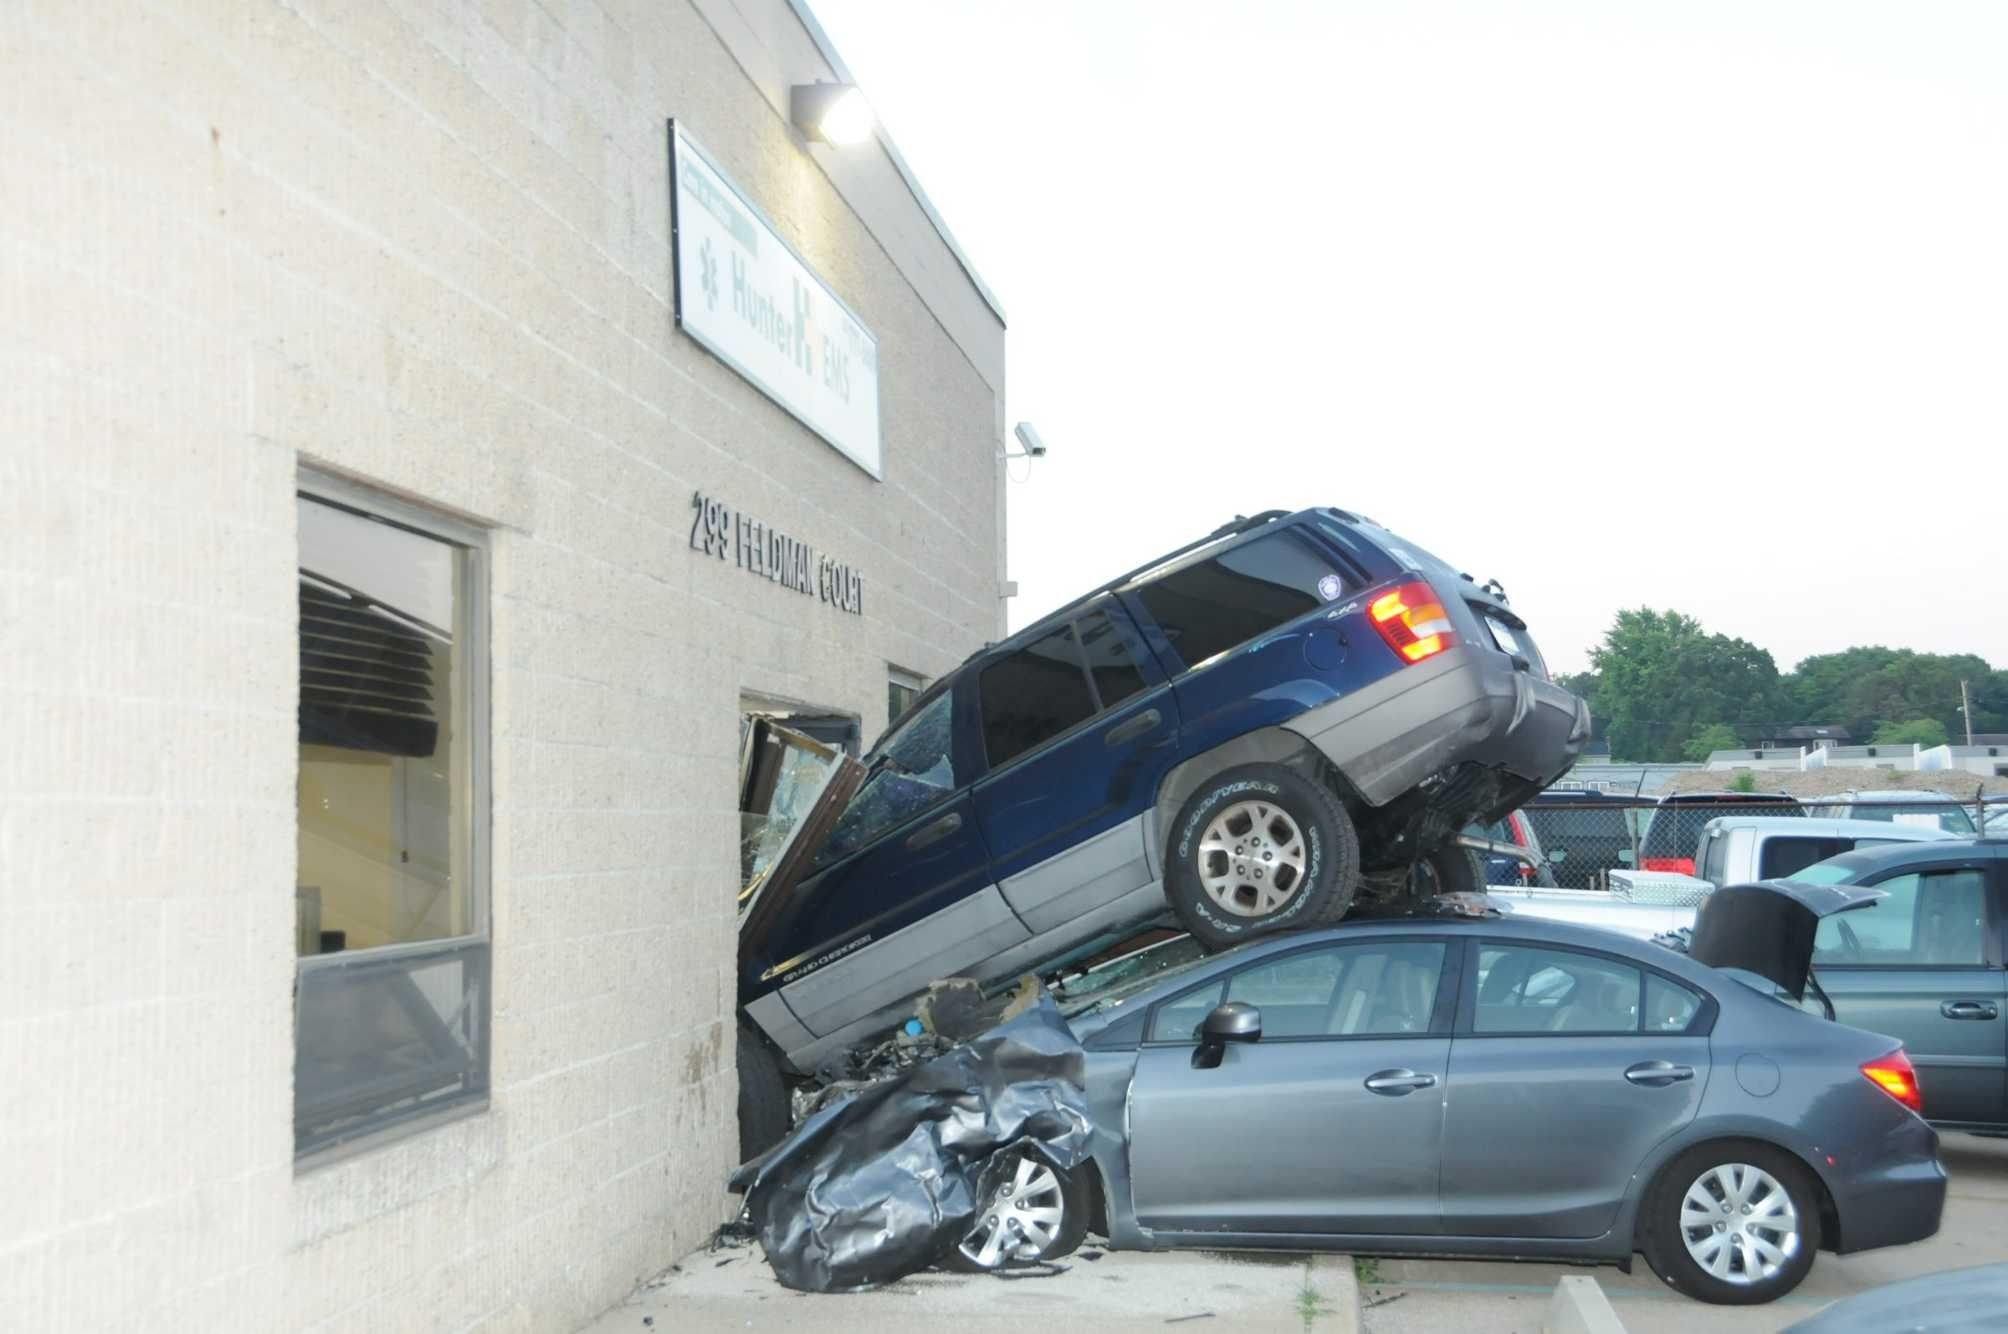 Cars driven into houses and buildings Vehicles, Accident